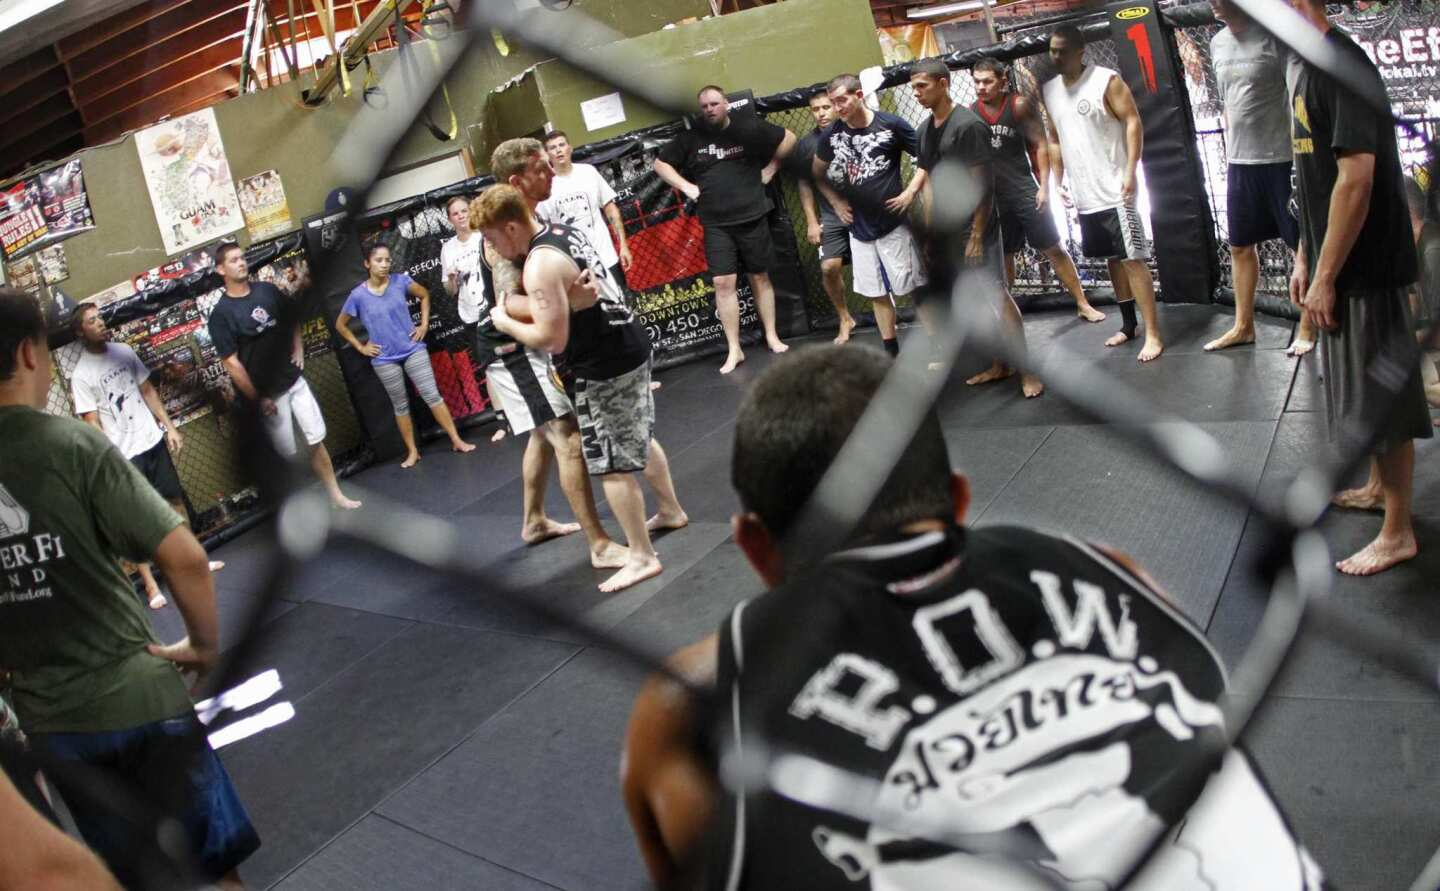 War veterans gather in a circle inside a fight cage as Todd Vance demonstrates an offensive martial arts move. The workouts help veterans cope with post-traumatic stress issues and have been endorsed by psychologists.